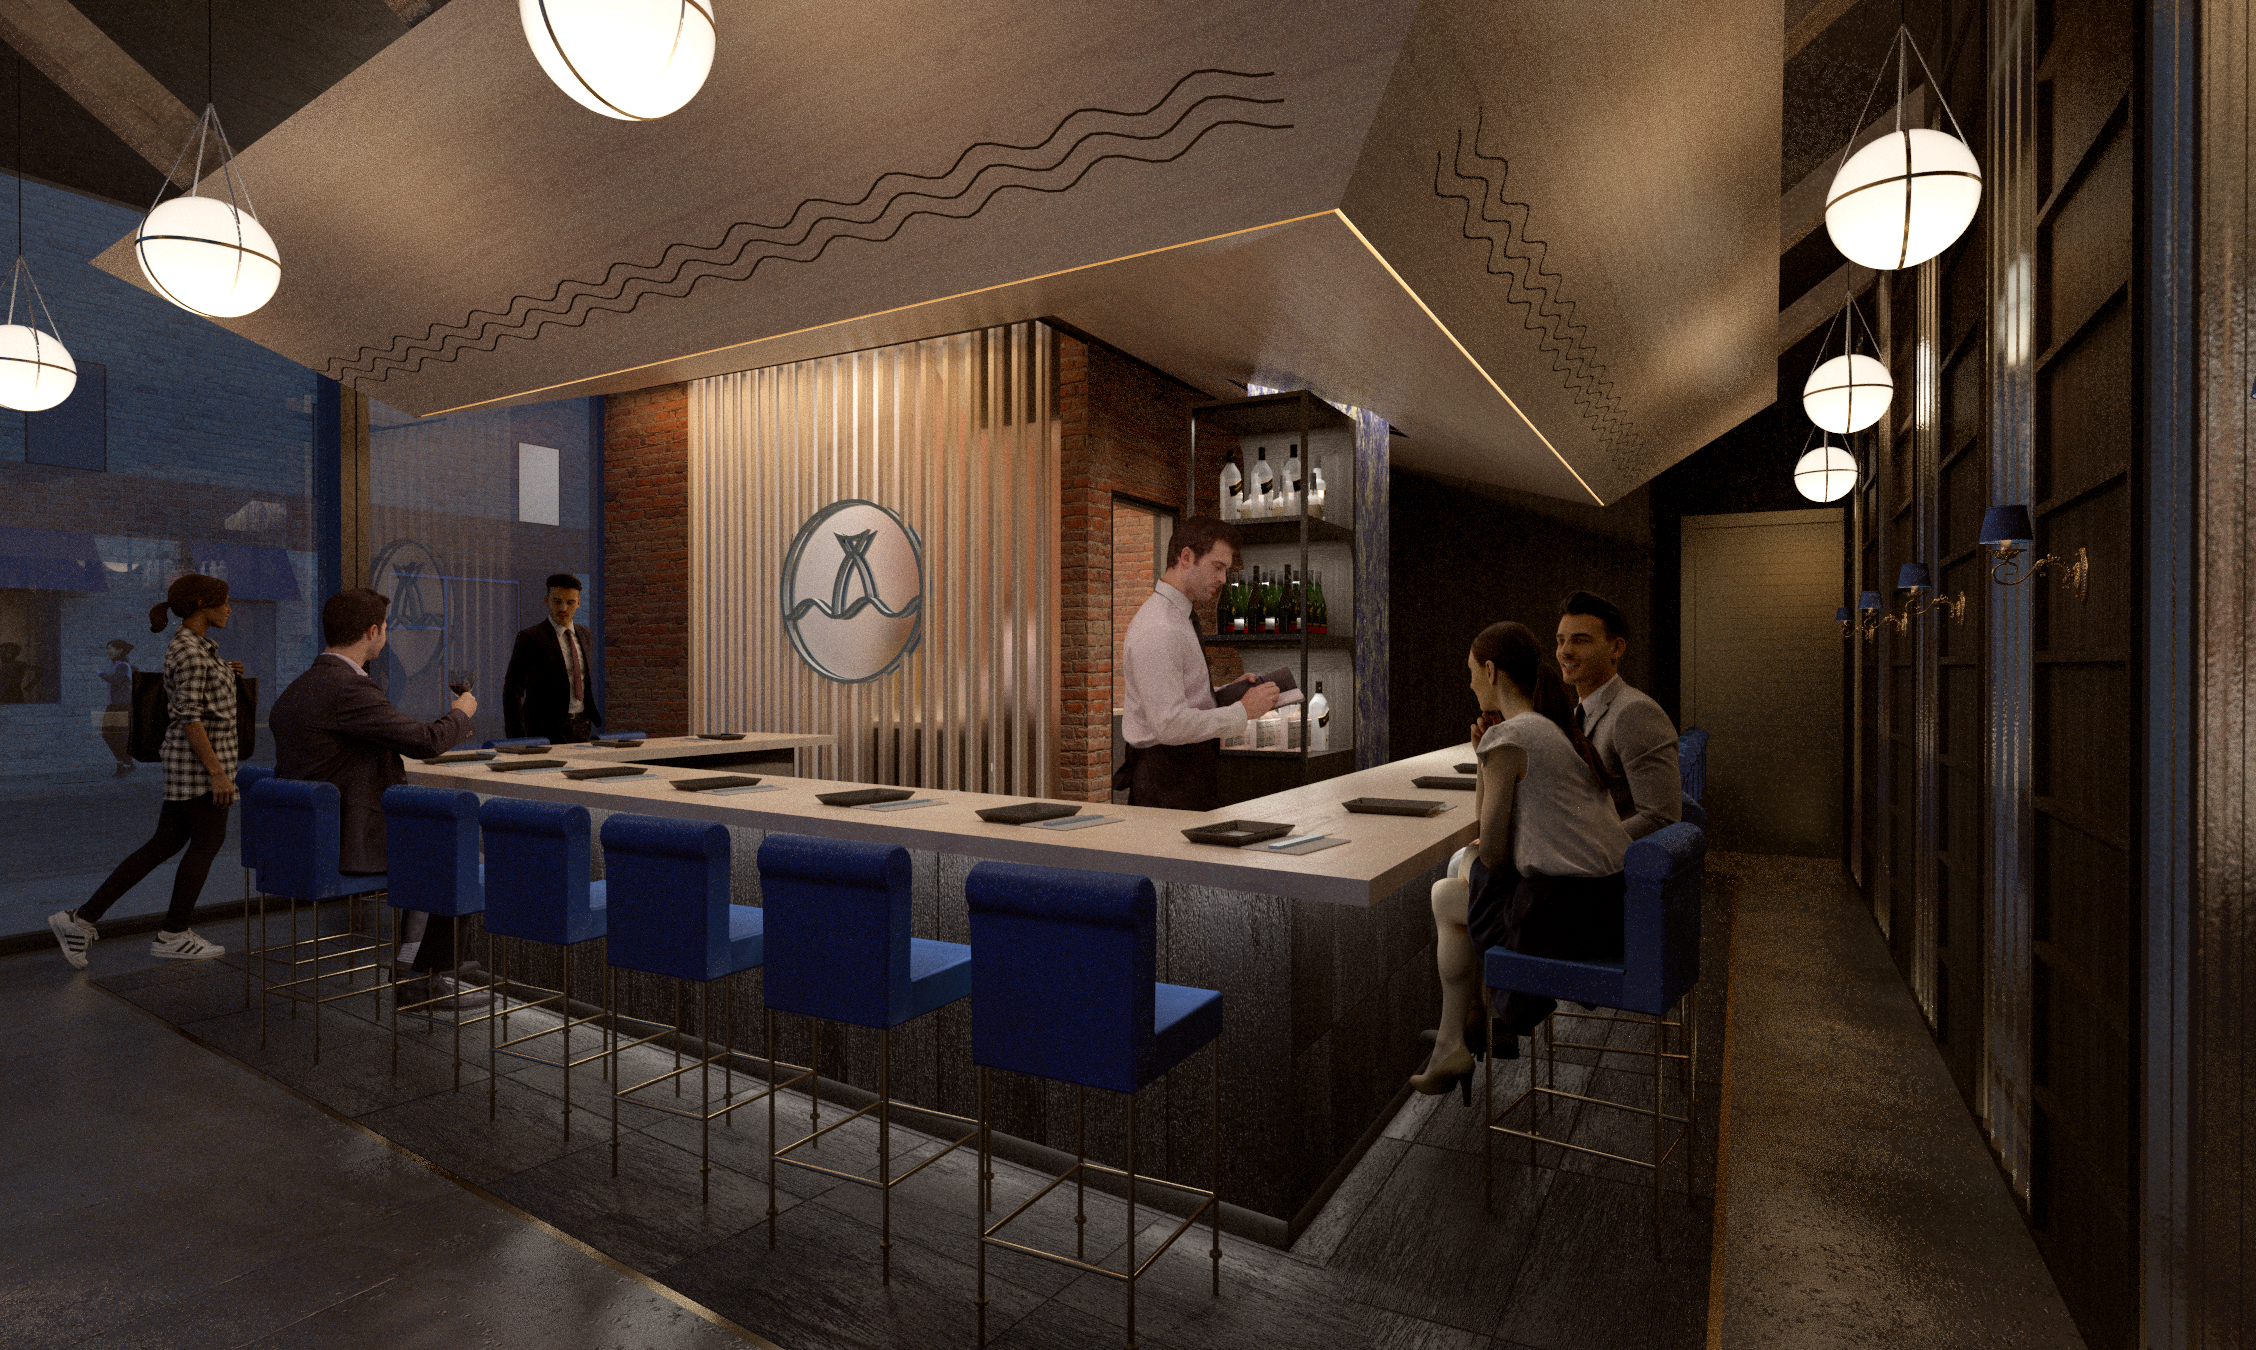 Design consultation & visualization for Bondi Sushi